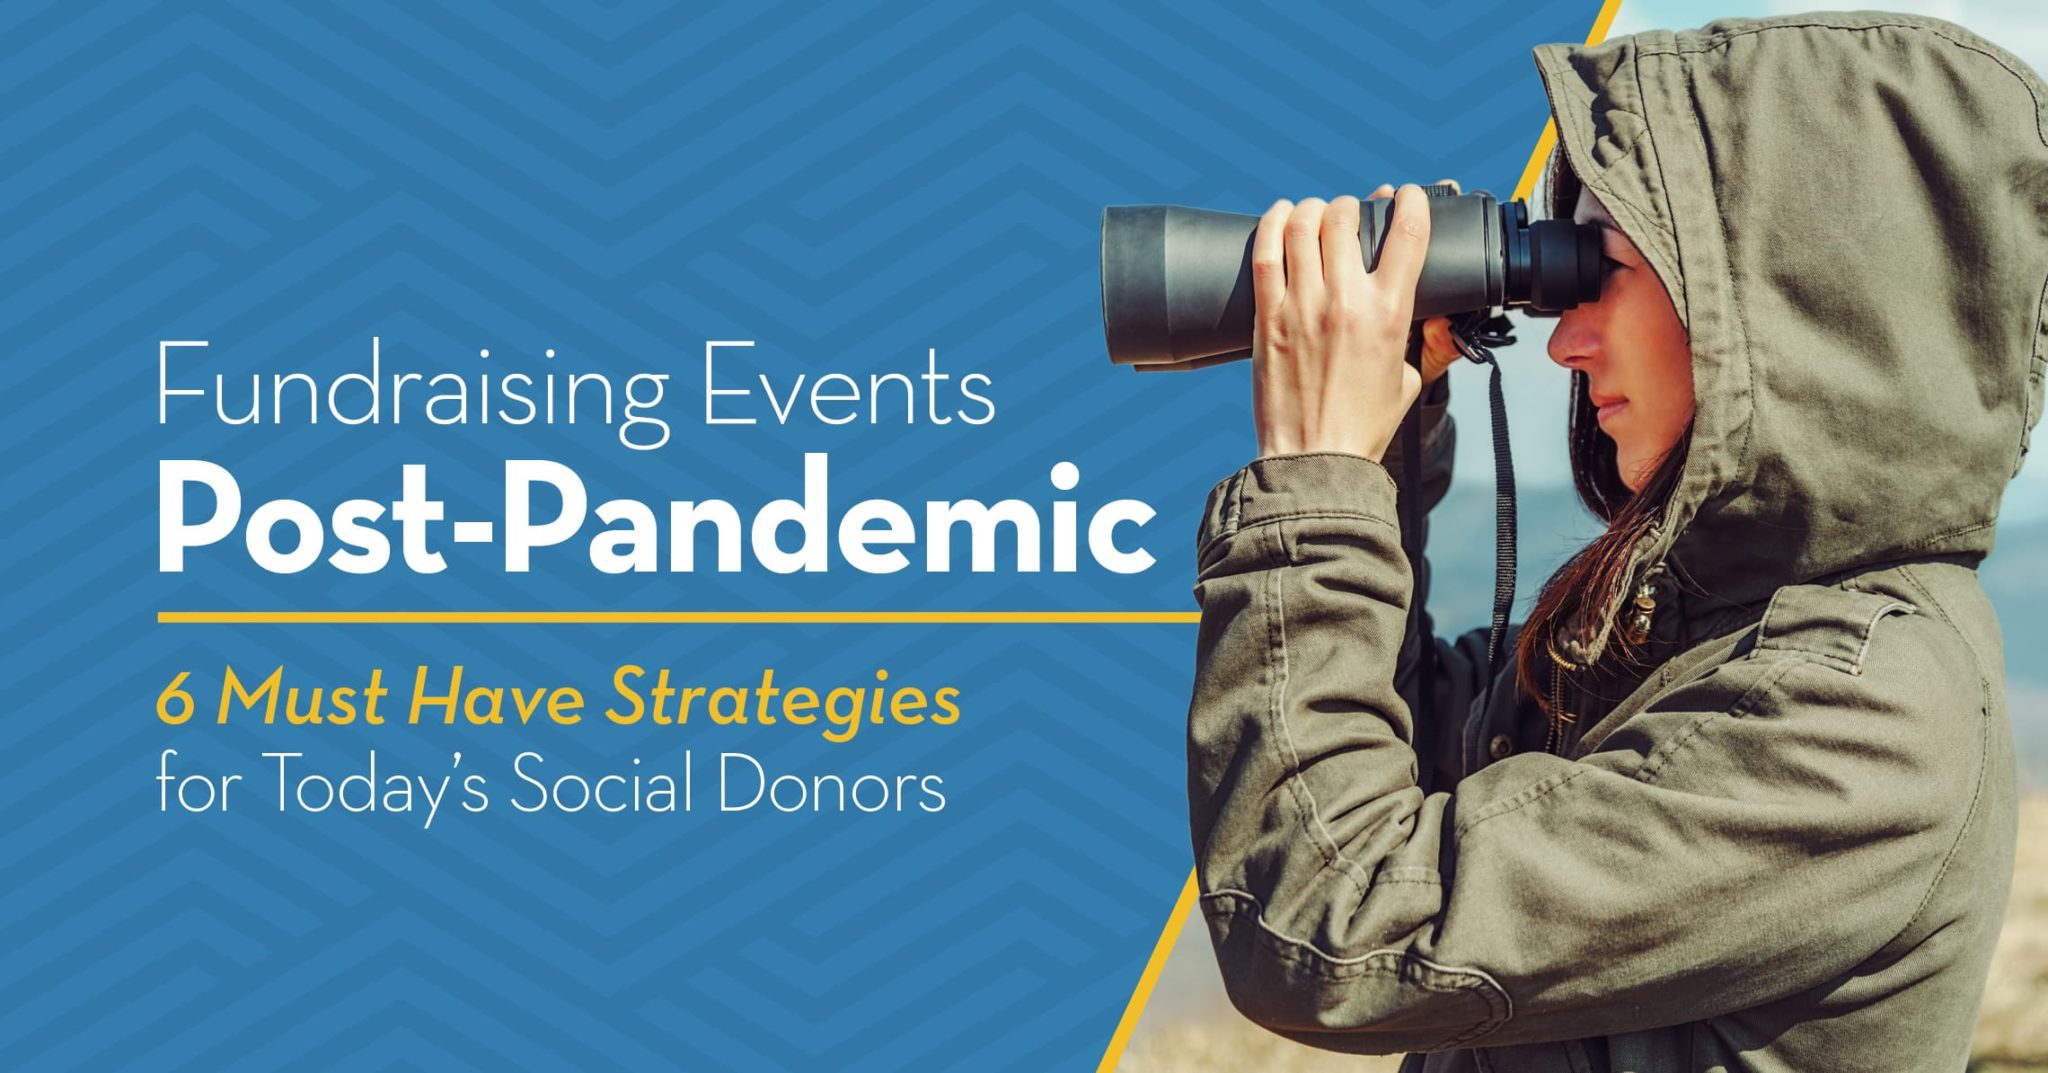 fundraising-events-post-pandemic-6-strategies-social-donors